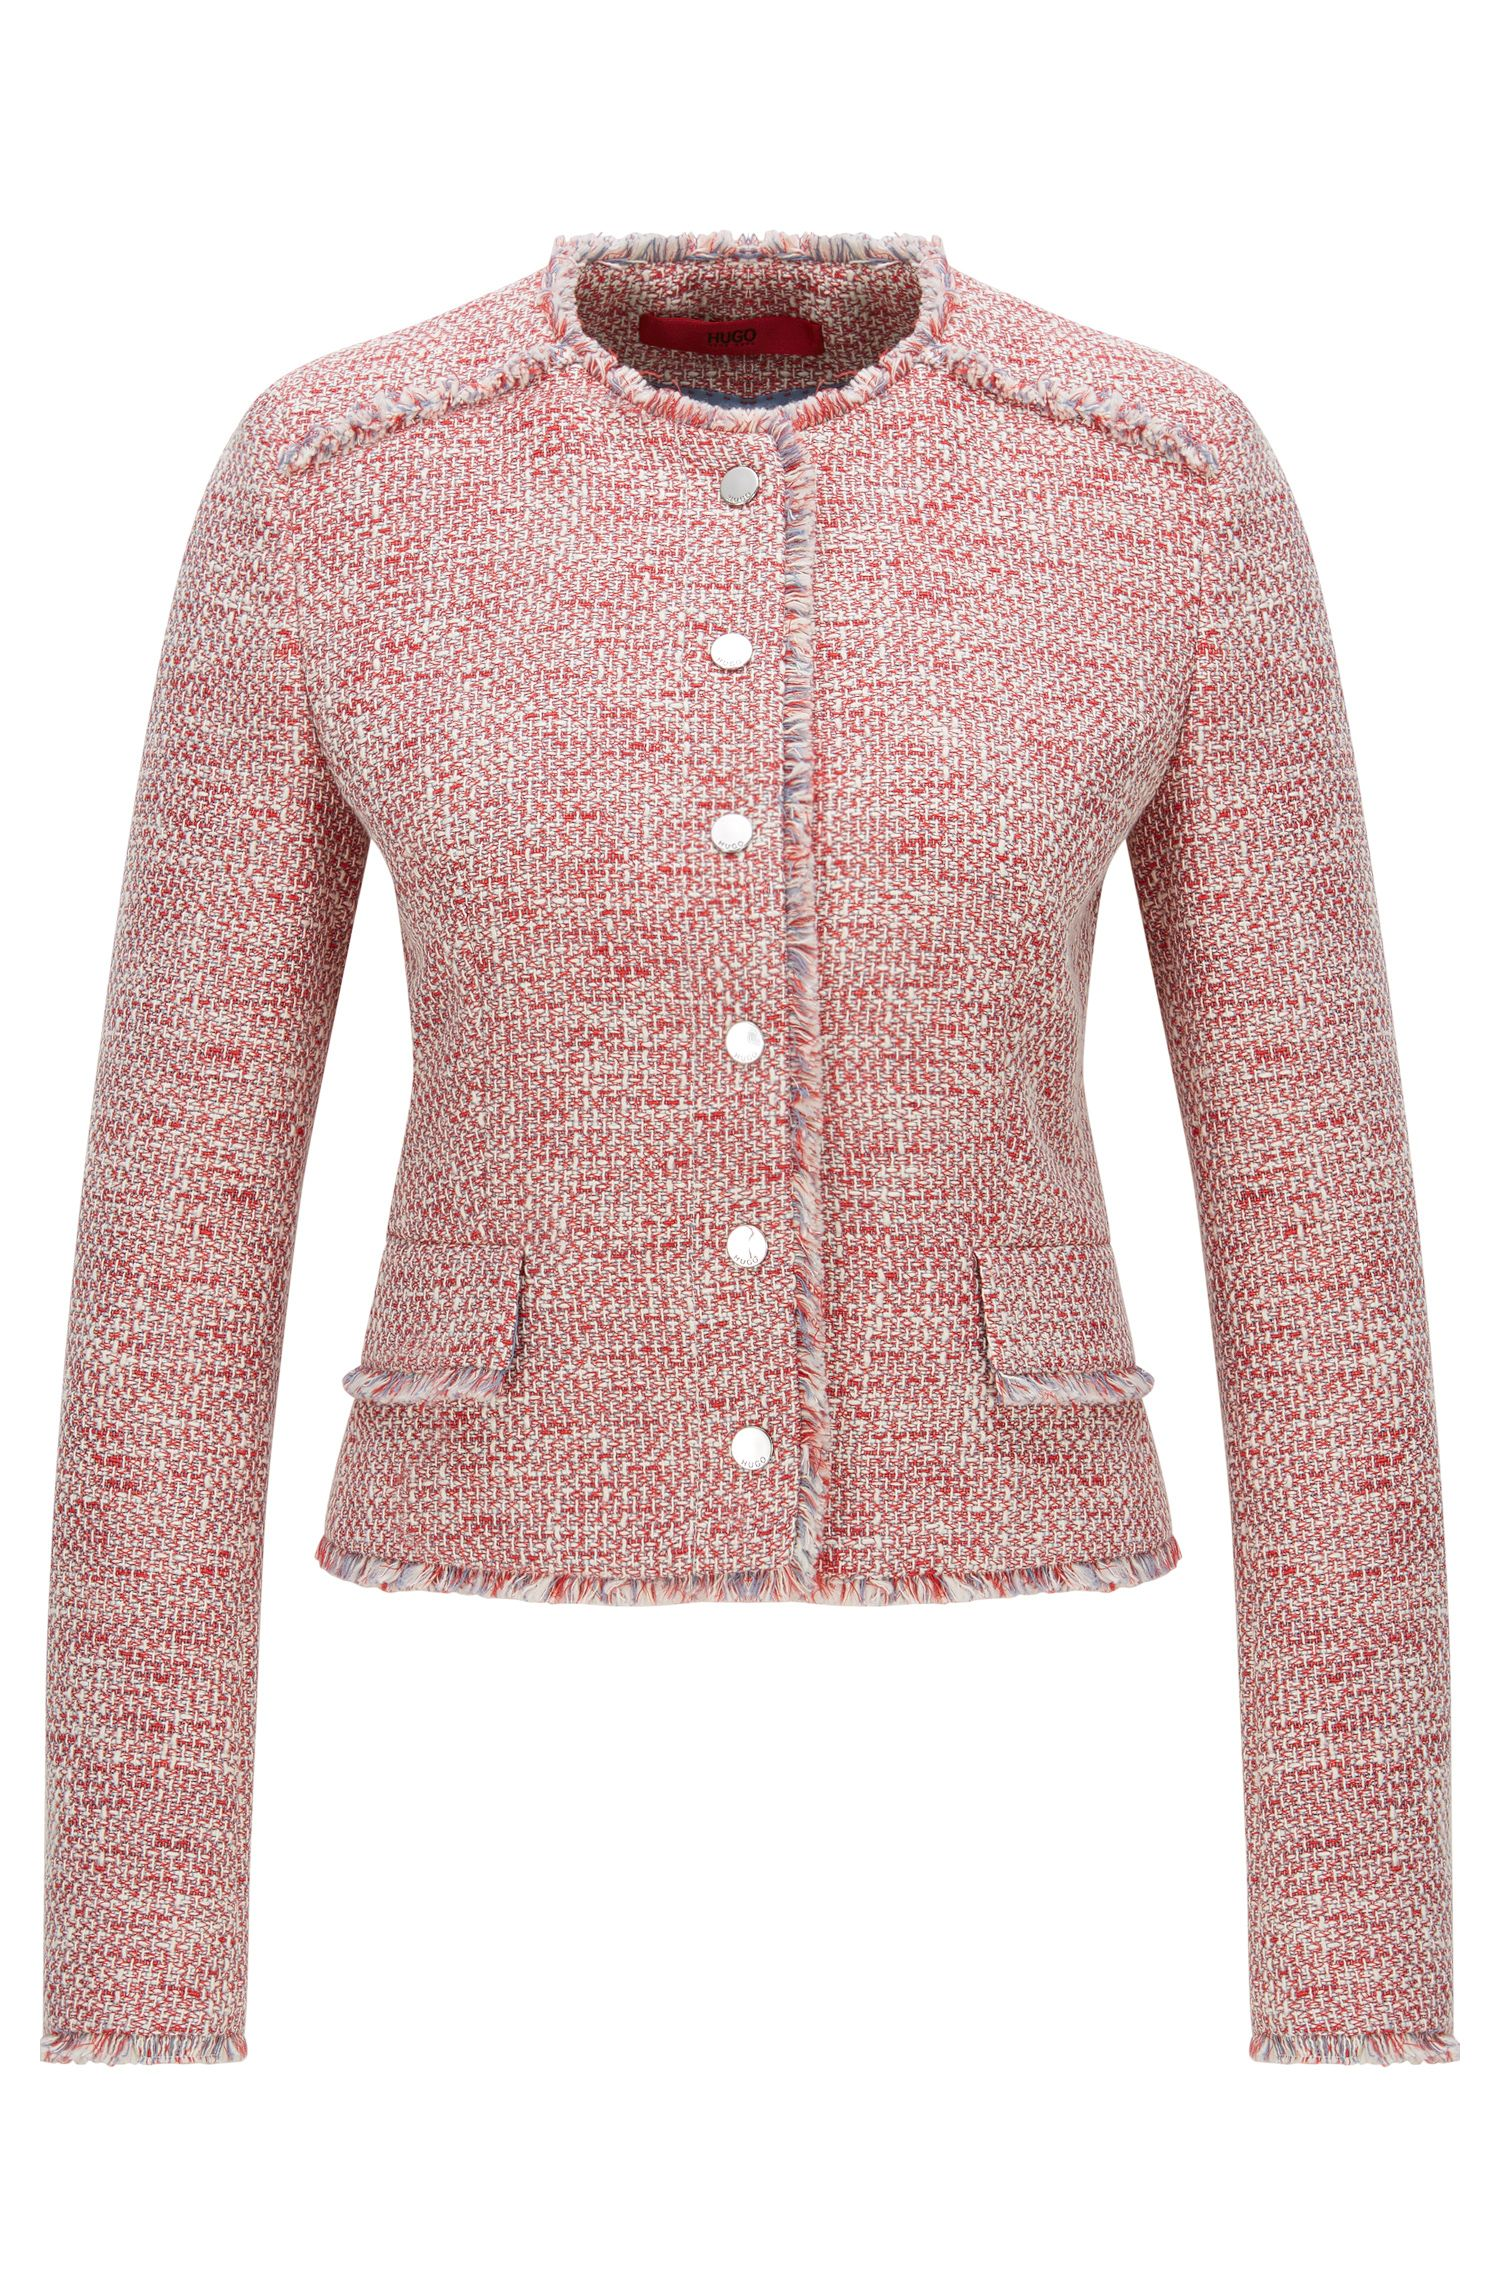 Regular-fit jacket in cotton-blend tweed